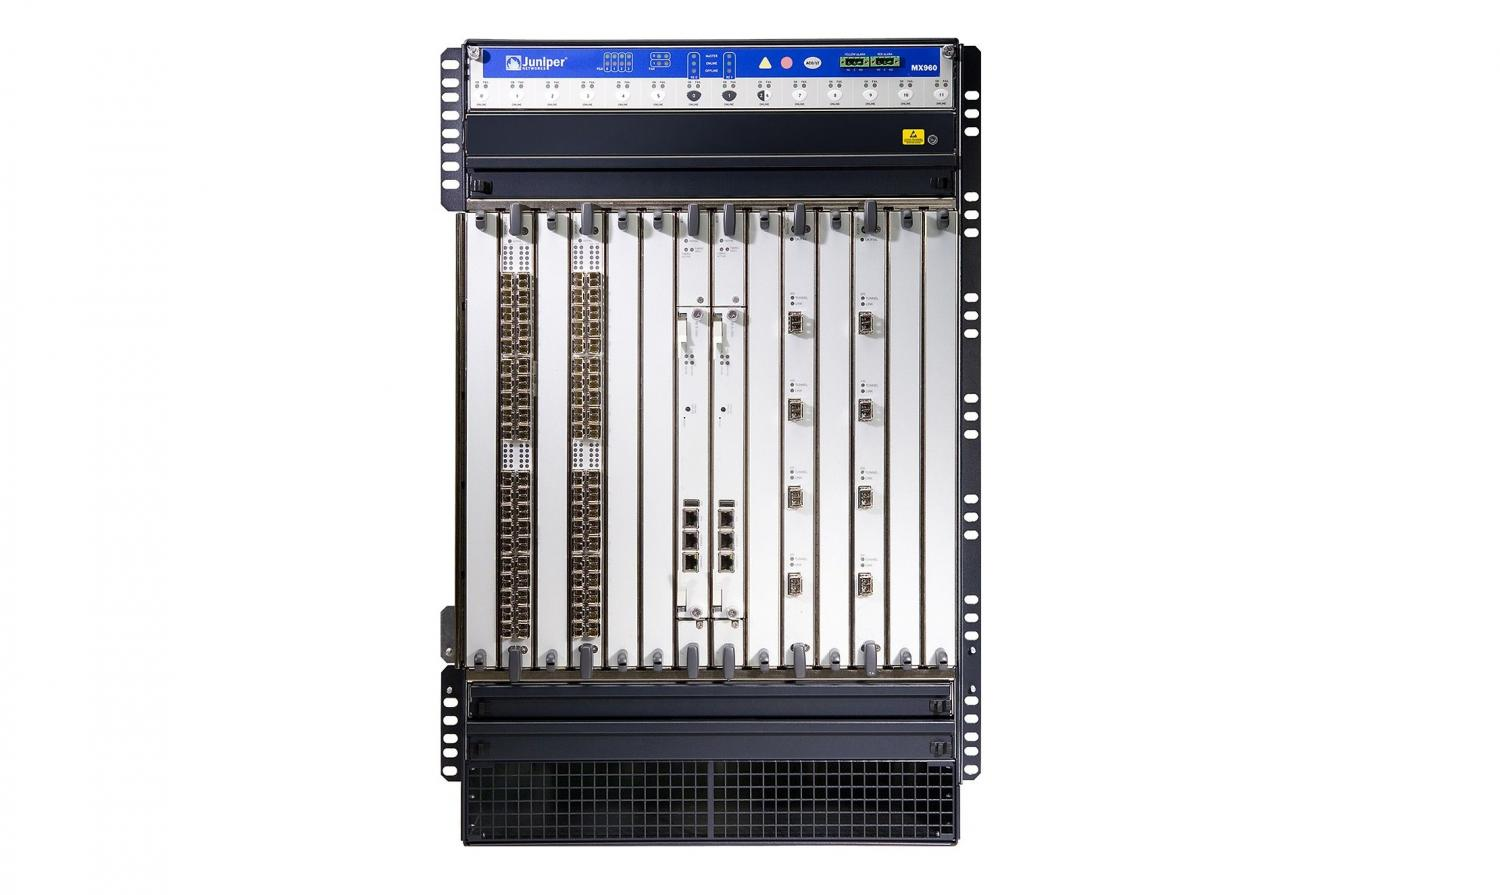 MX960BASE-AC  (2x RE-S-1800X4-16G, 2x SCBE-MX, 1x MPC-3D-16XGE-SFP, 4x PWR-AC, FAN Tray)